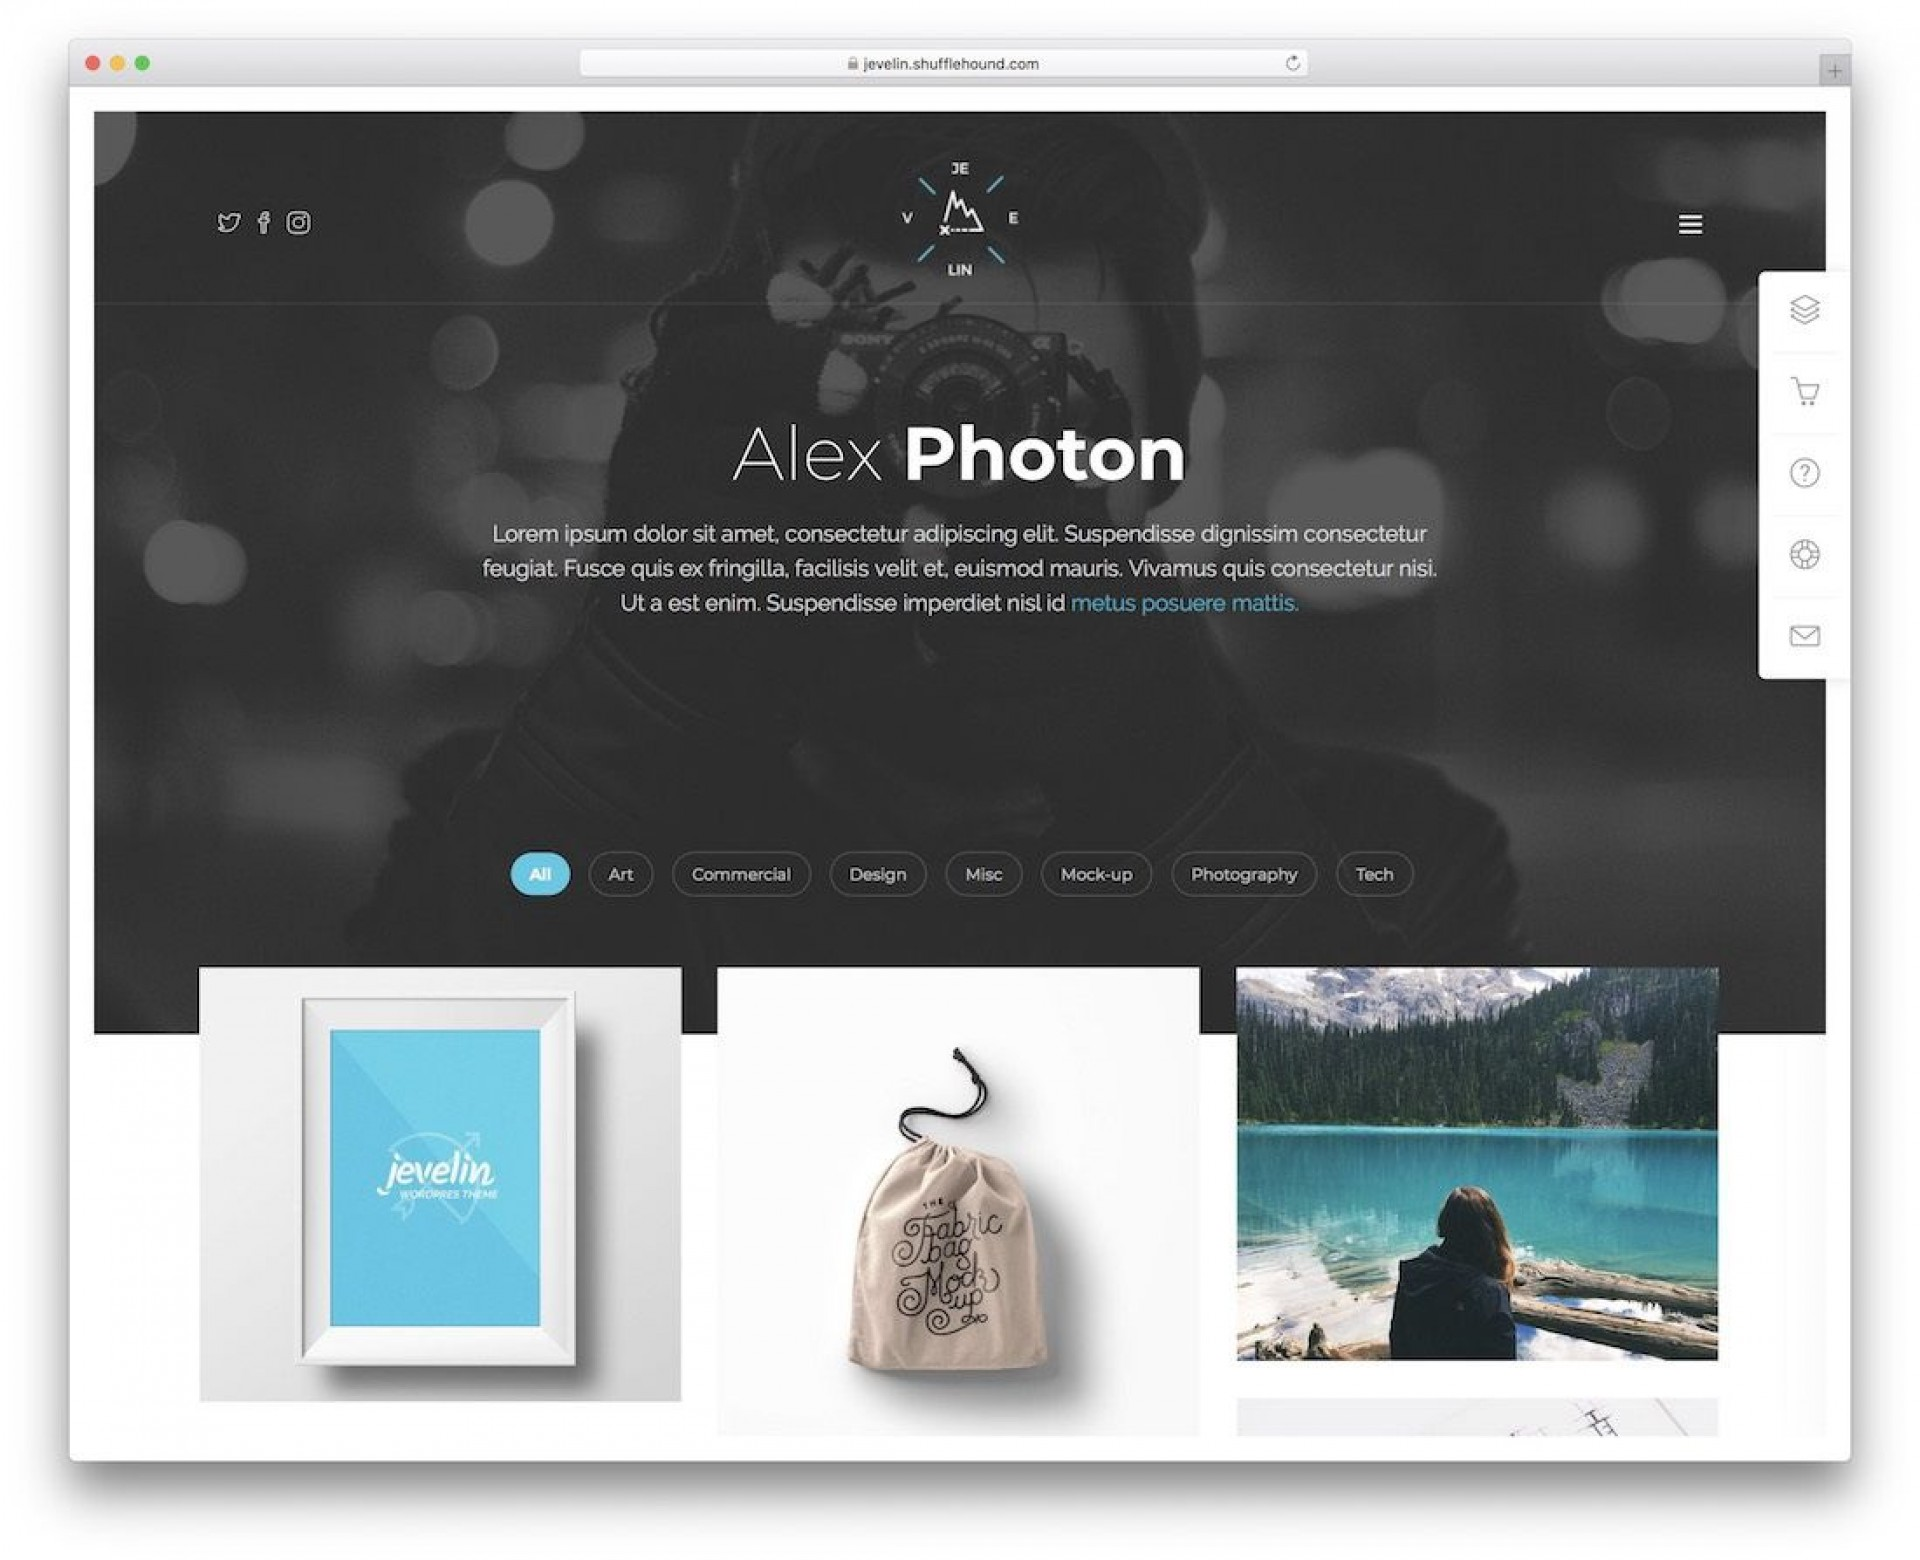 004 Wonderful Free Website Template Download Html And Cs For Photo Gallery 1920